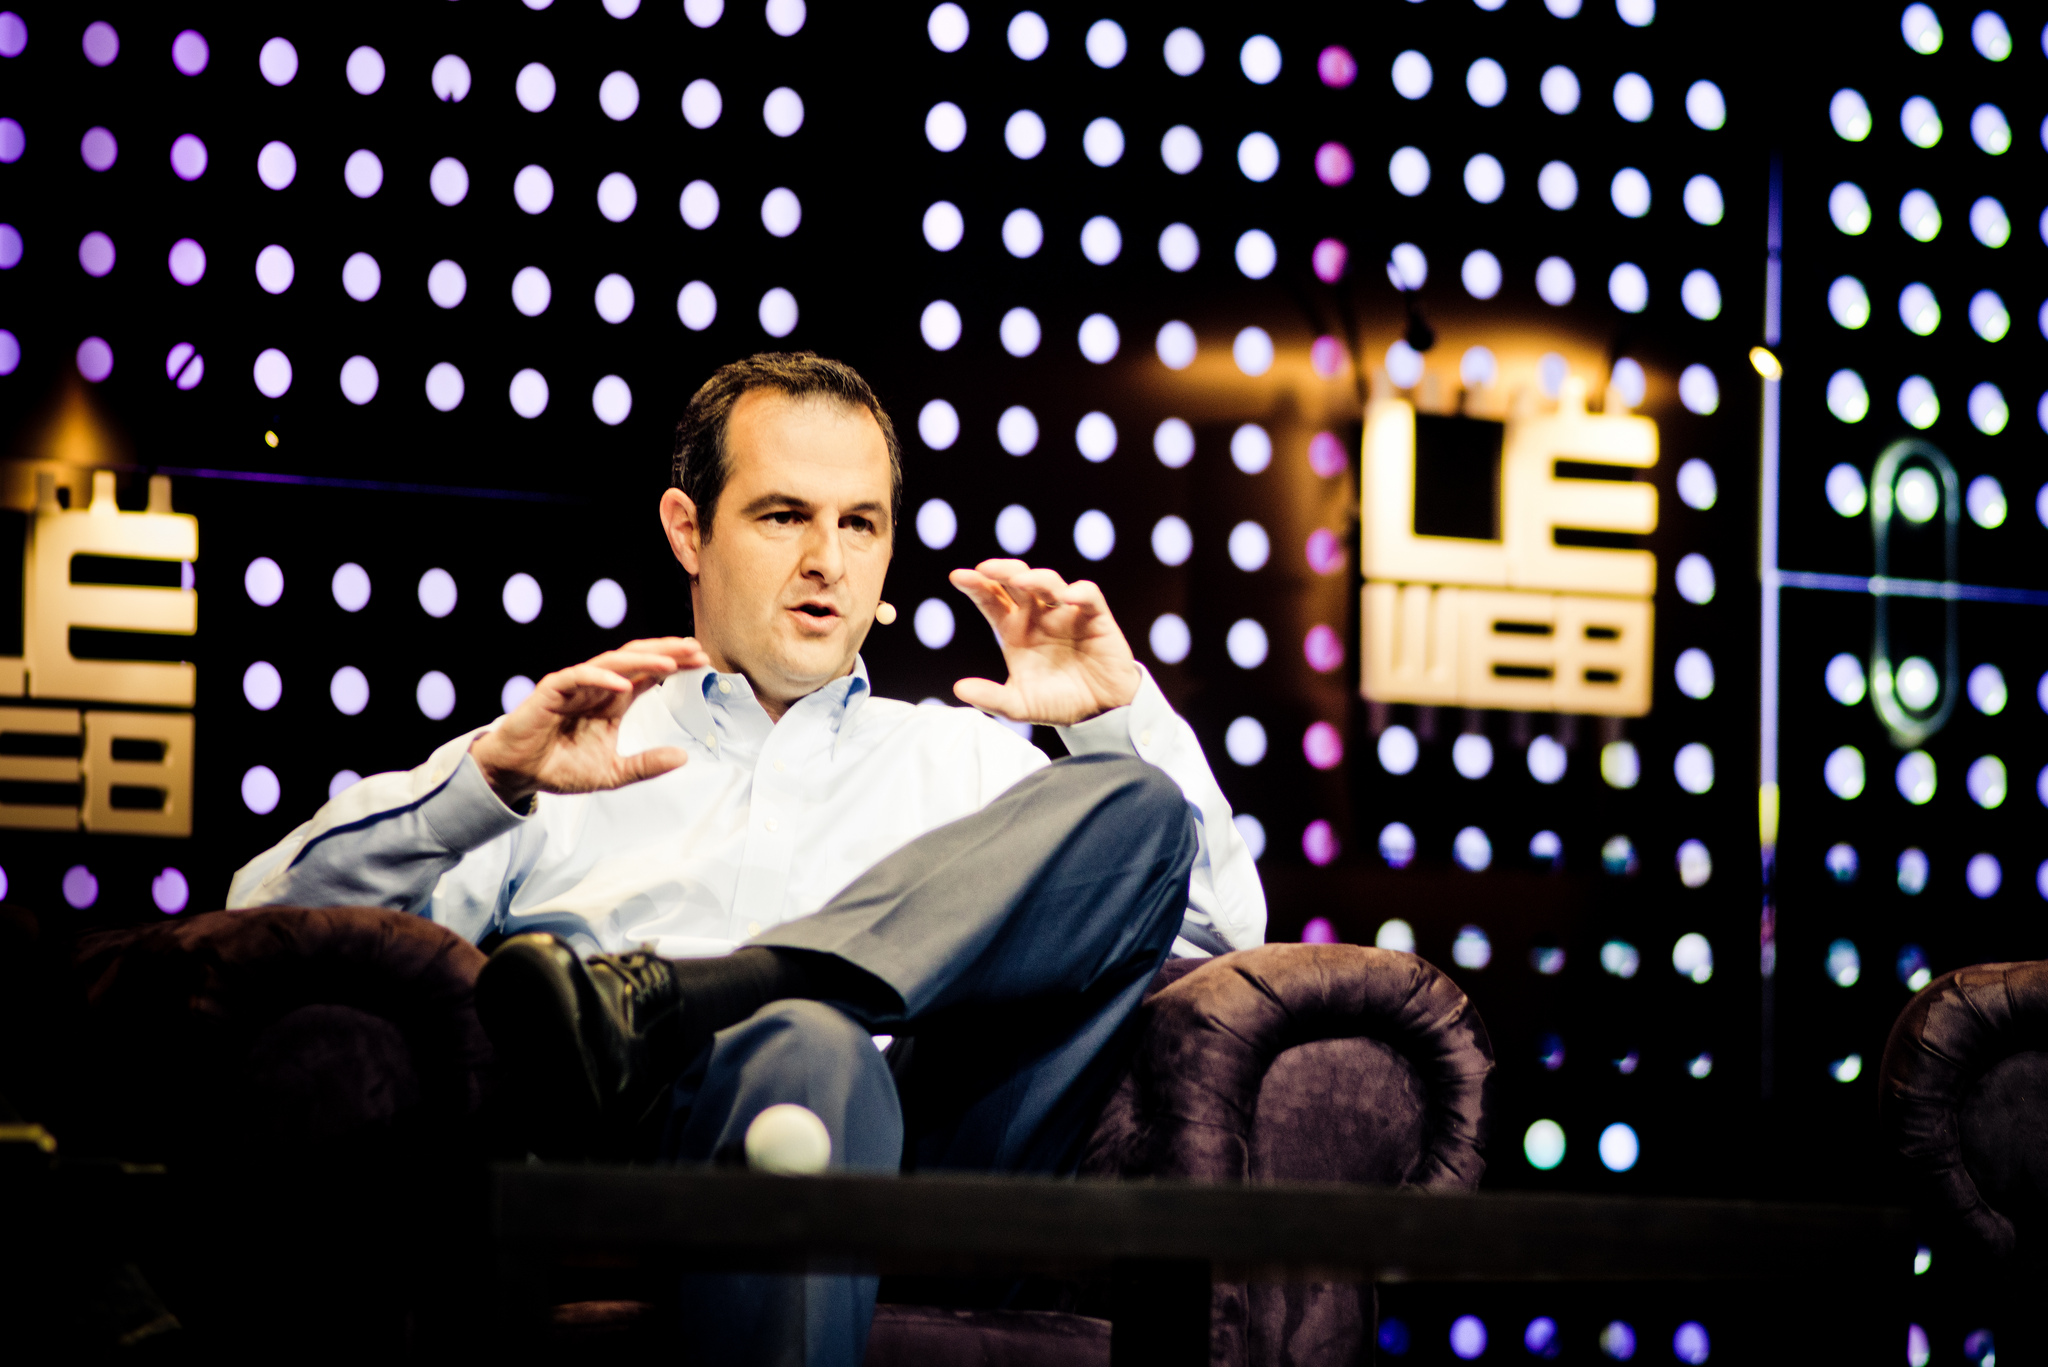 Will Renaud recapture Lending Club?